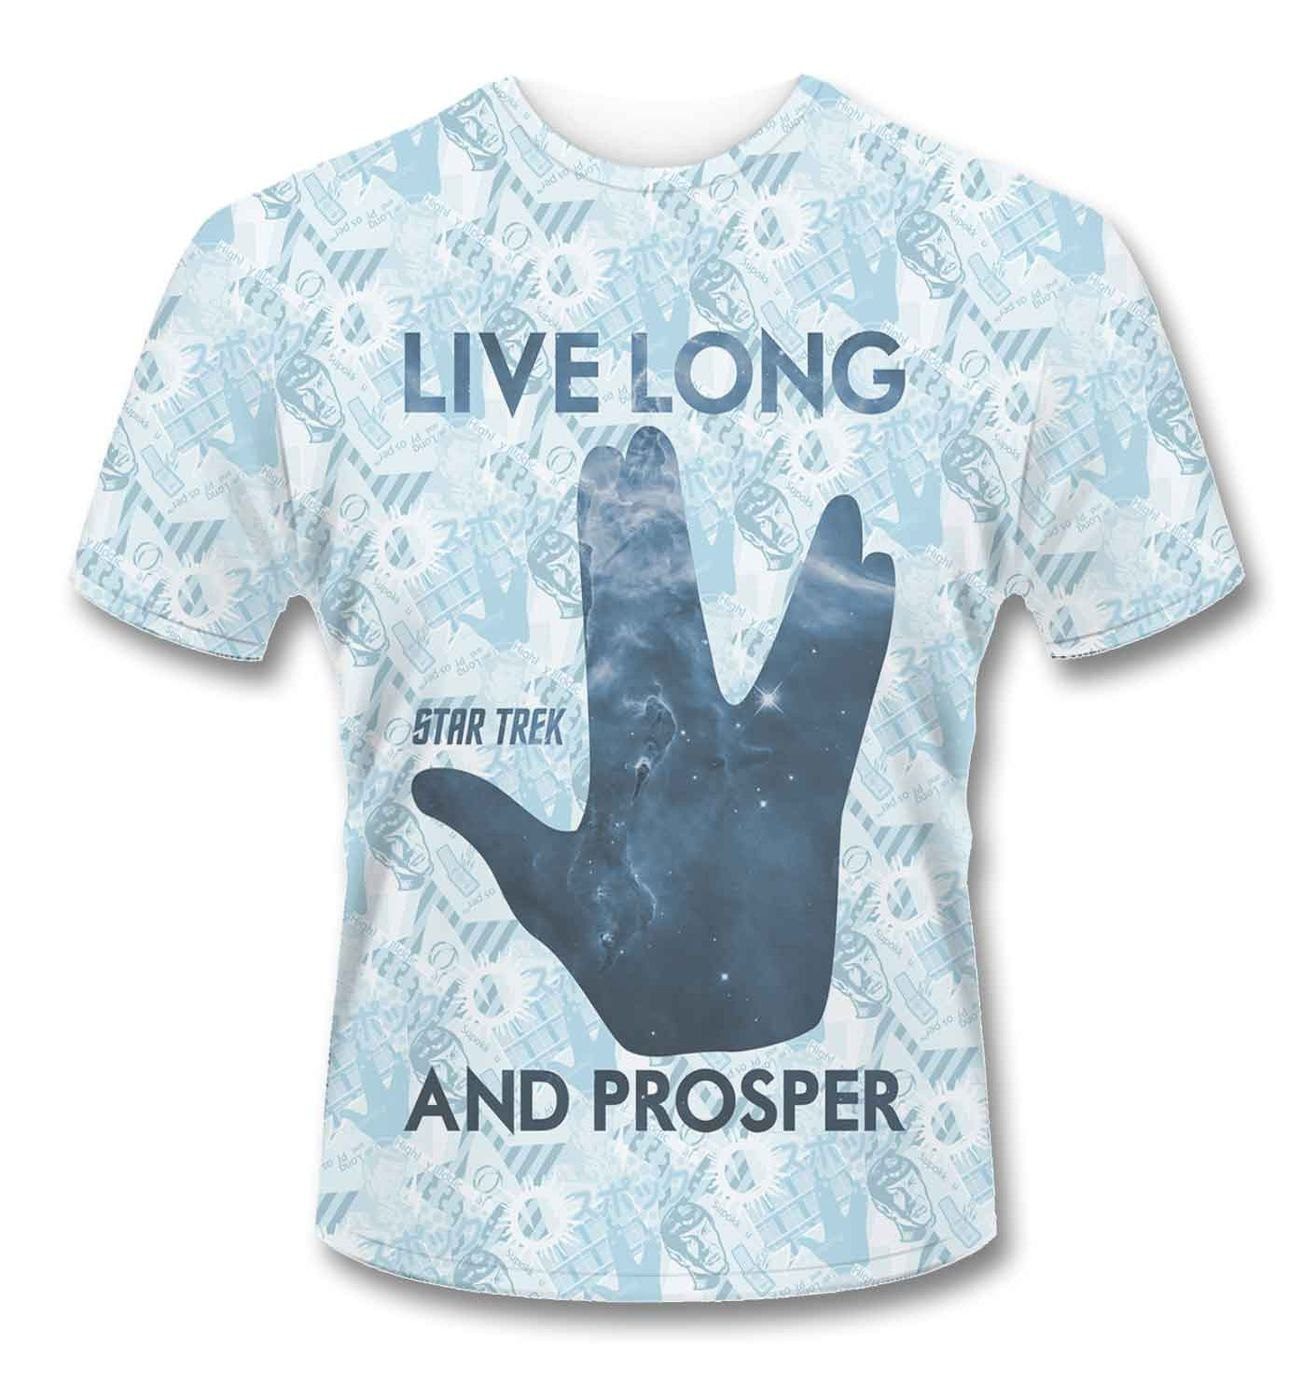 Official Star Trek SubDye Live Long And Prosper Spock t-shirt